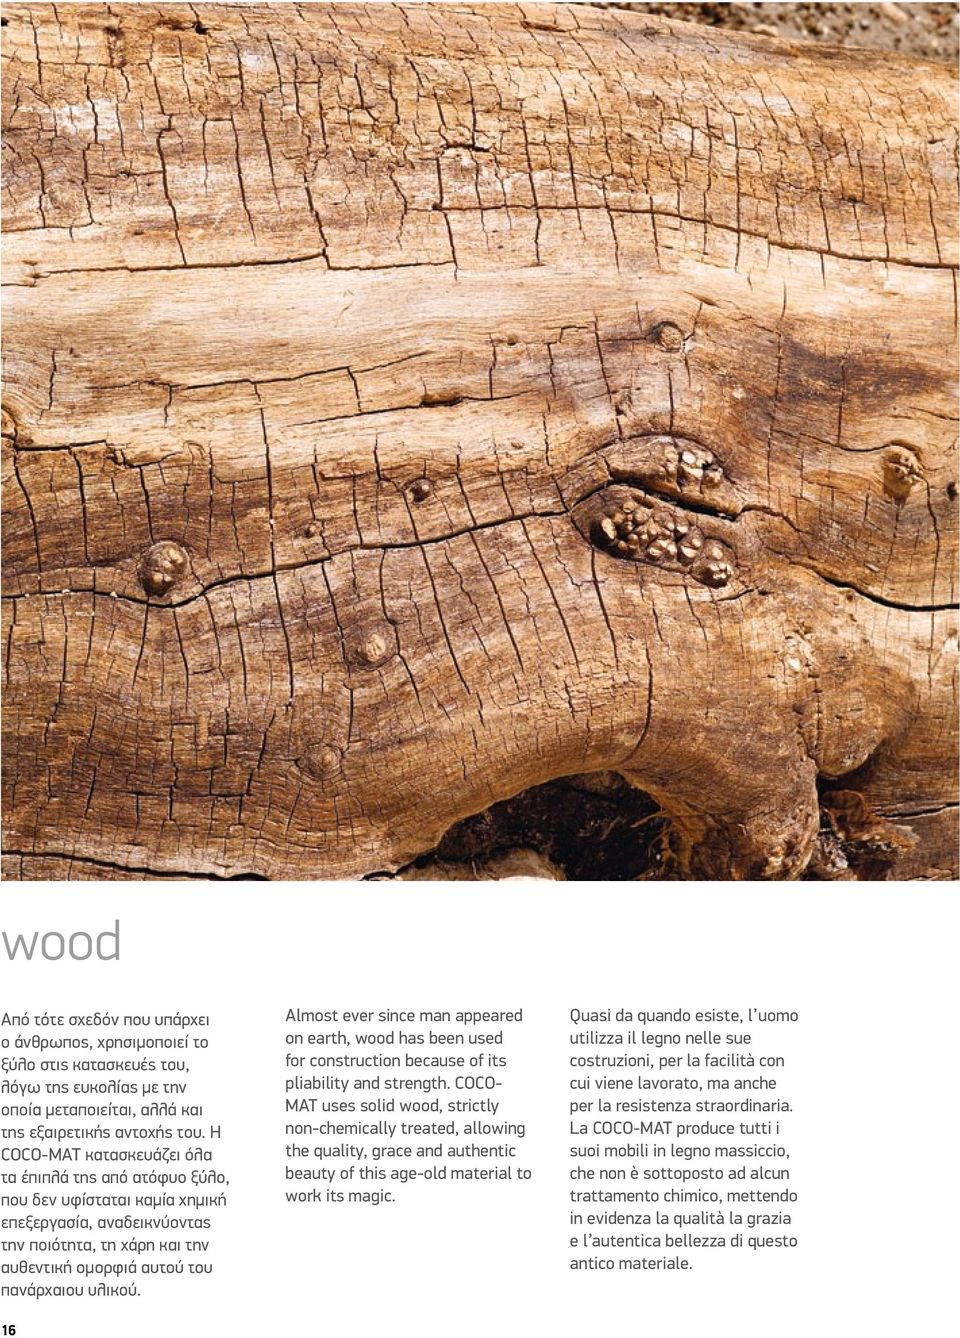 16 Almost ever since man appeared on earth, wood has been used for construction because of its pliability and strength.